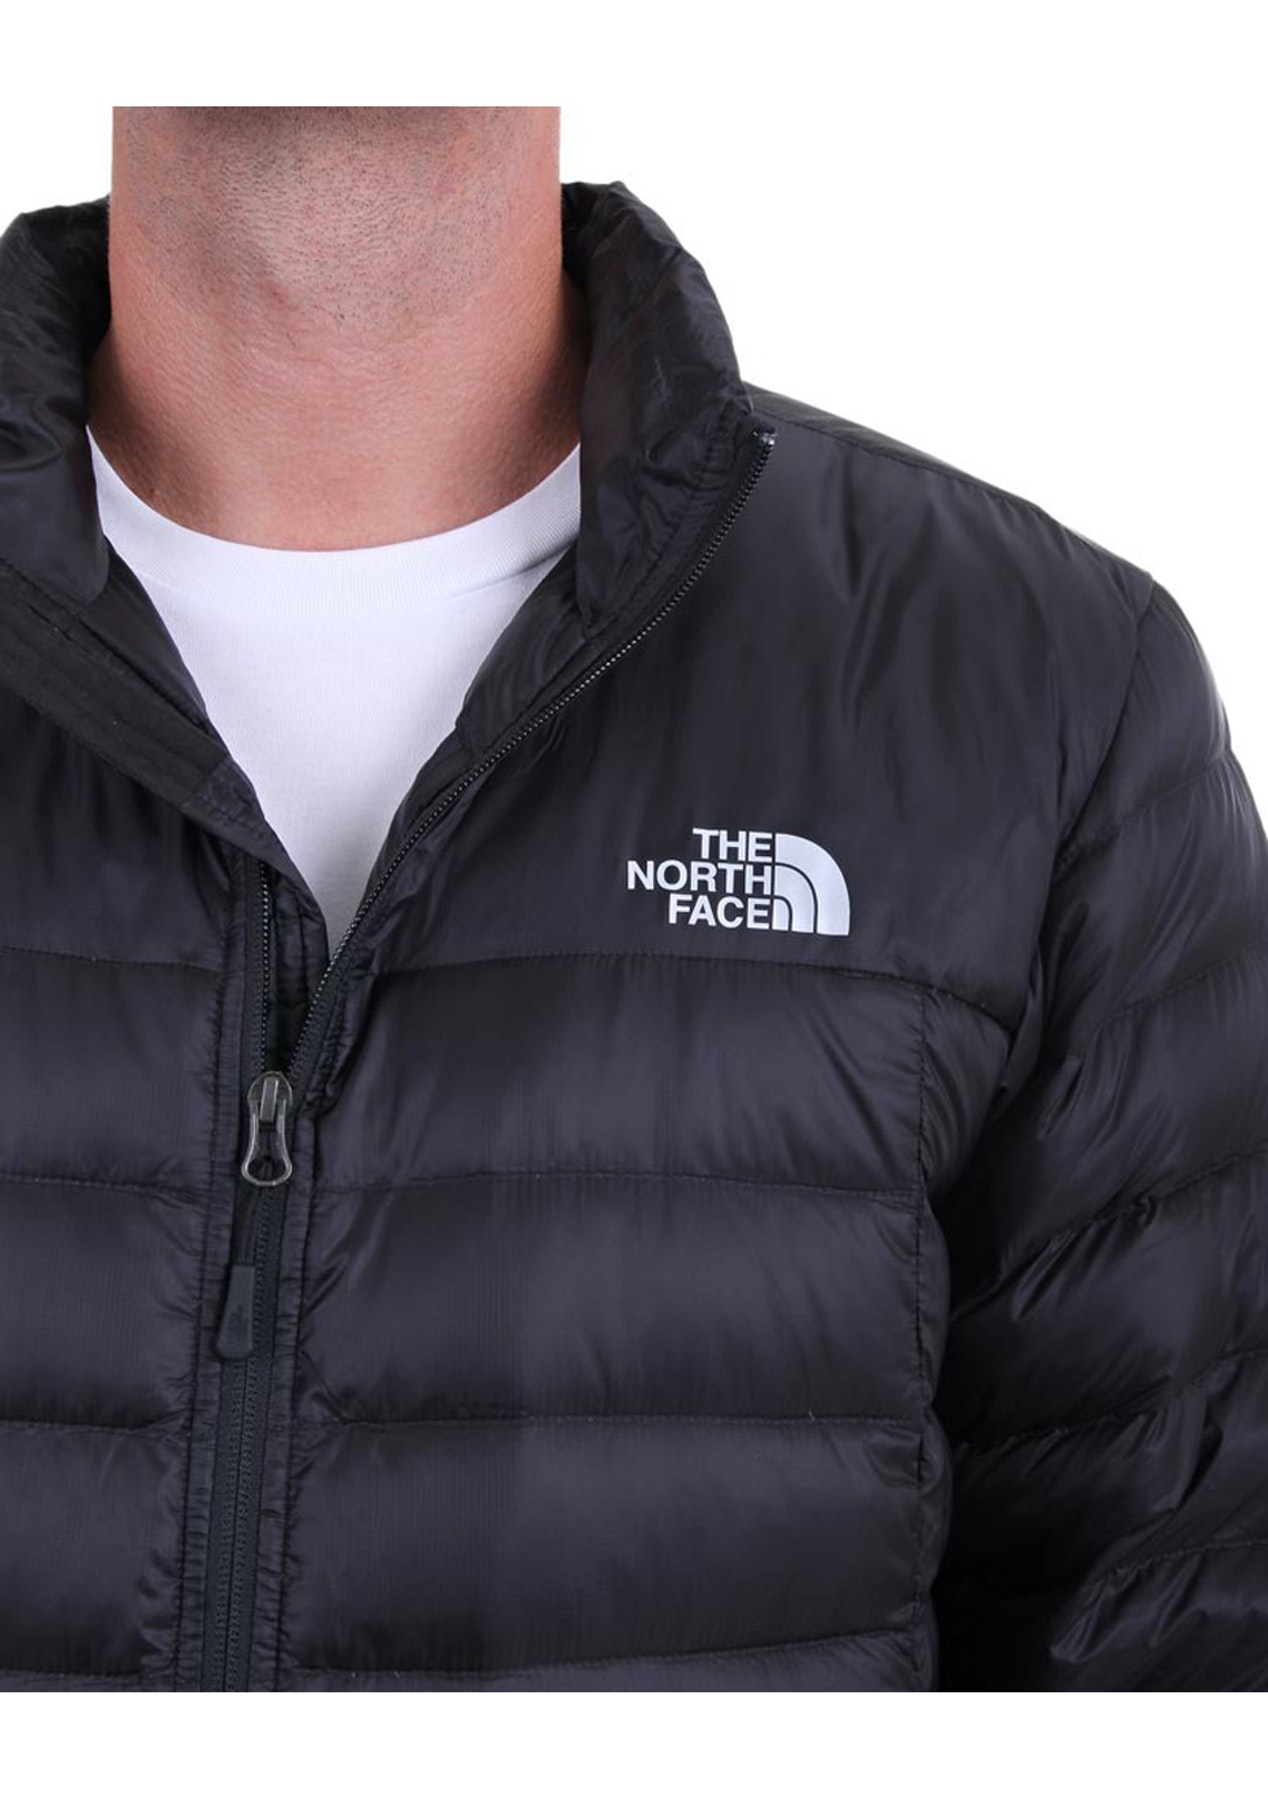 e839a48a1c4a The North Face - Mens Tonnerro Jacket - Black-X-large - The Great Outdoor  Sale - Onceit